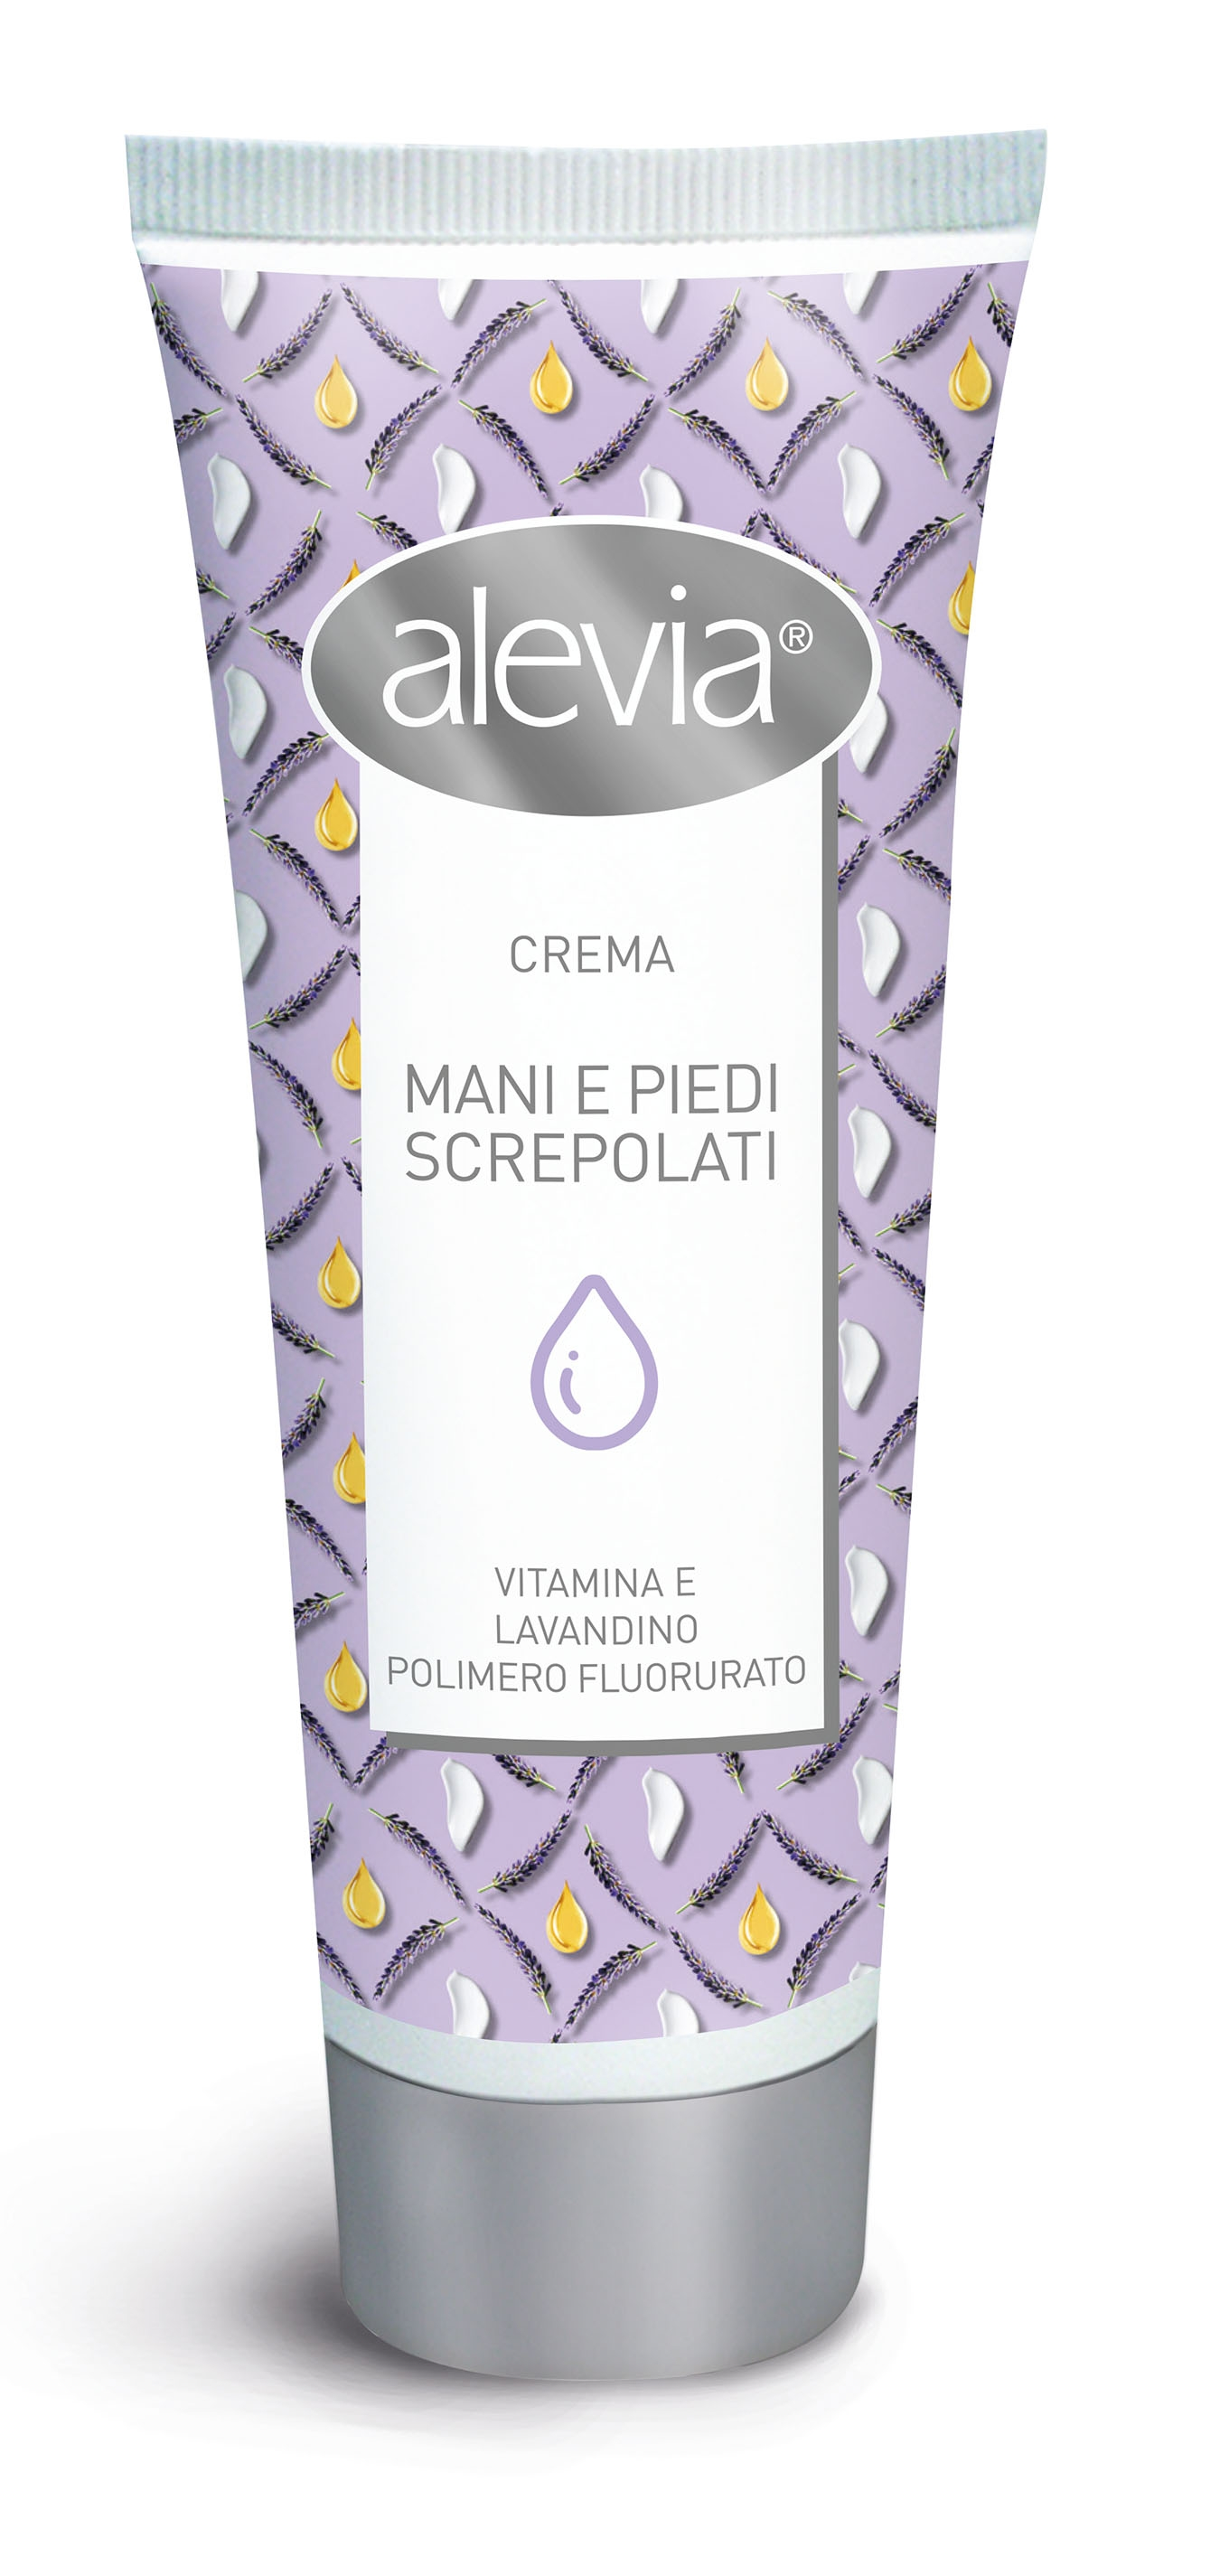 Alevia for chapped hands and feet